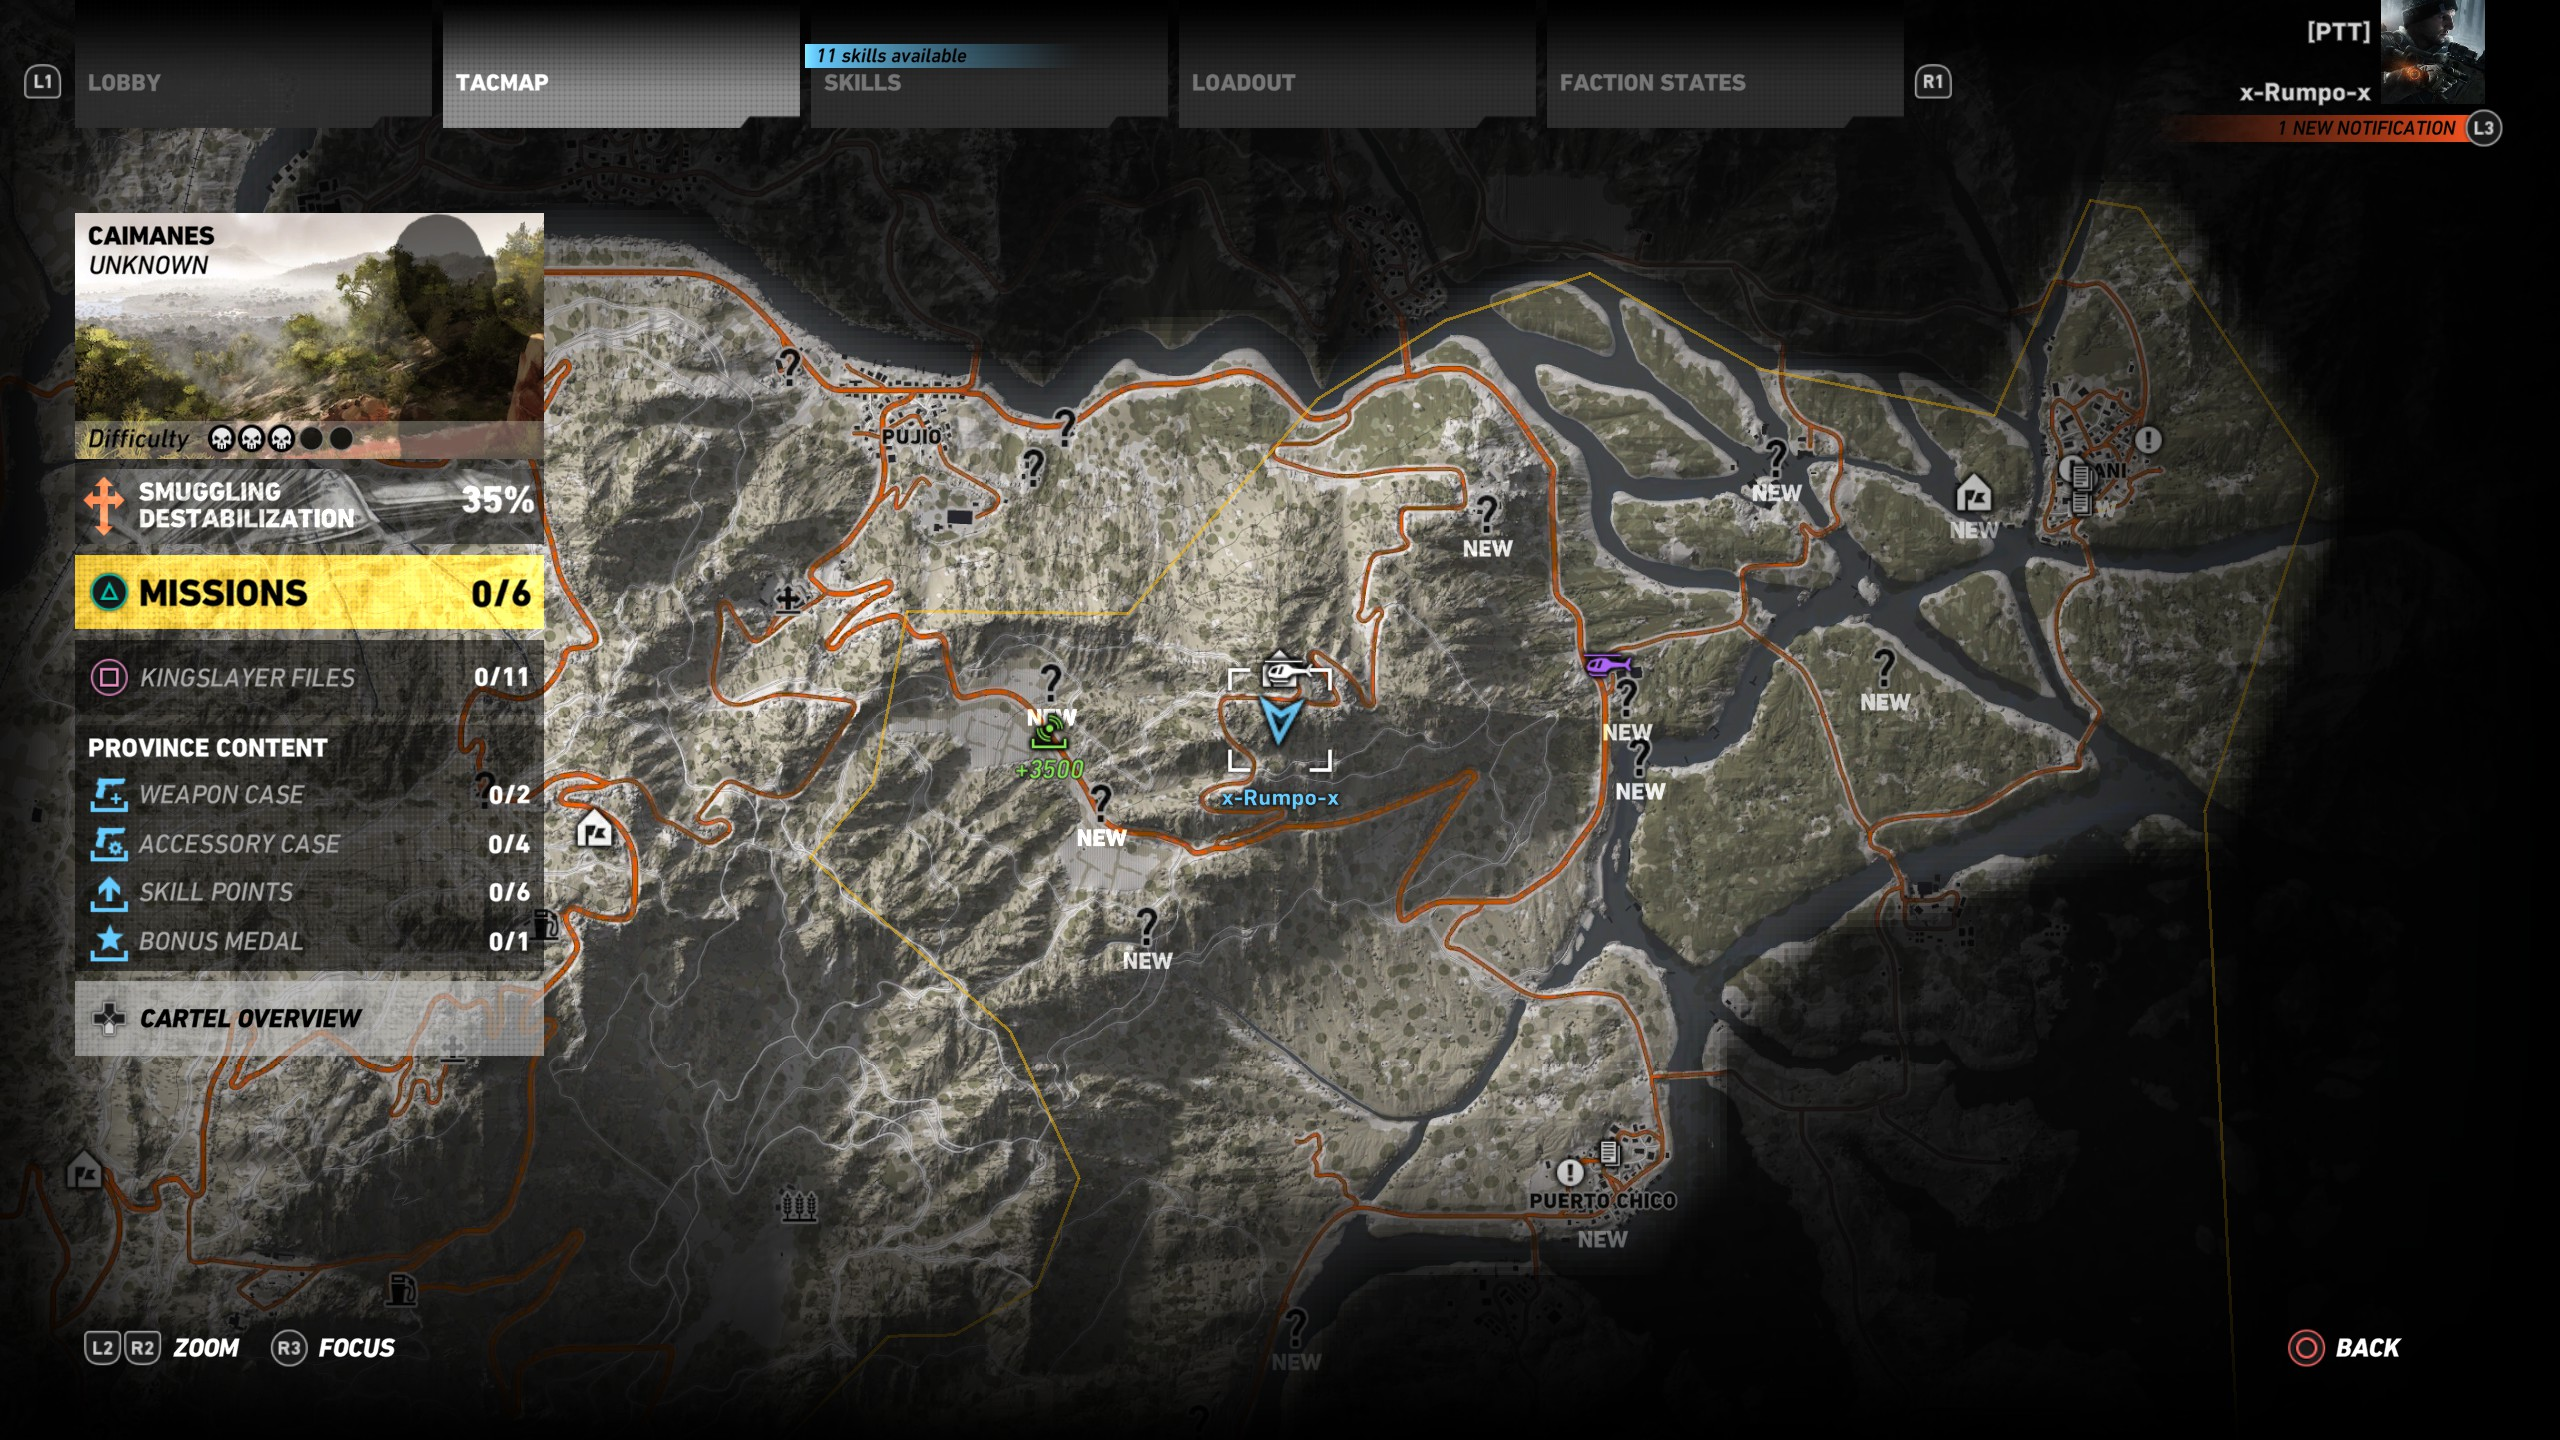 helicopter war game with Ghost Recon Wildlands Dark Souls Easter Egg Location on Mi 35 Hind further 3d Heart Wallpapers furthermore Battlefield Hardline Termin Fuer Patch Und Neue Inhalte furthermore Deng Xiaoping as well Art Of War.